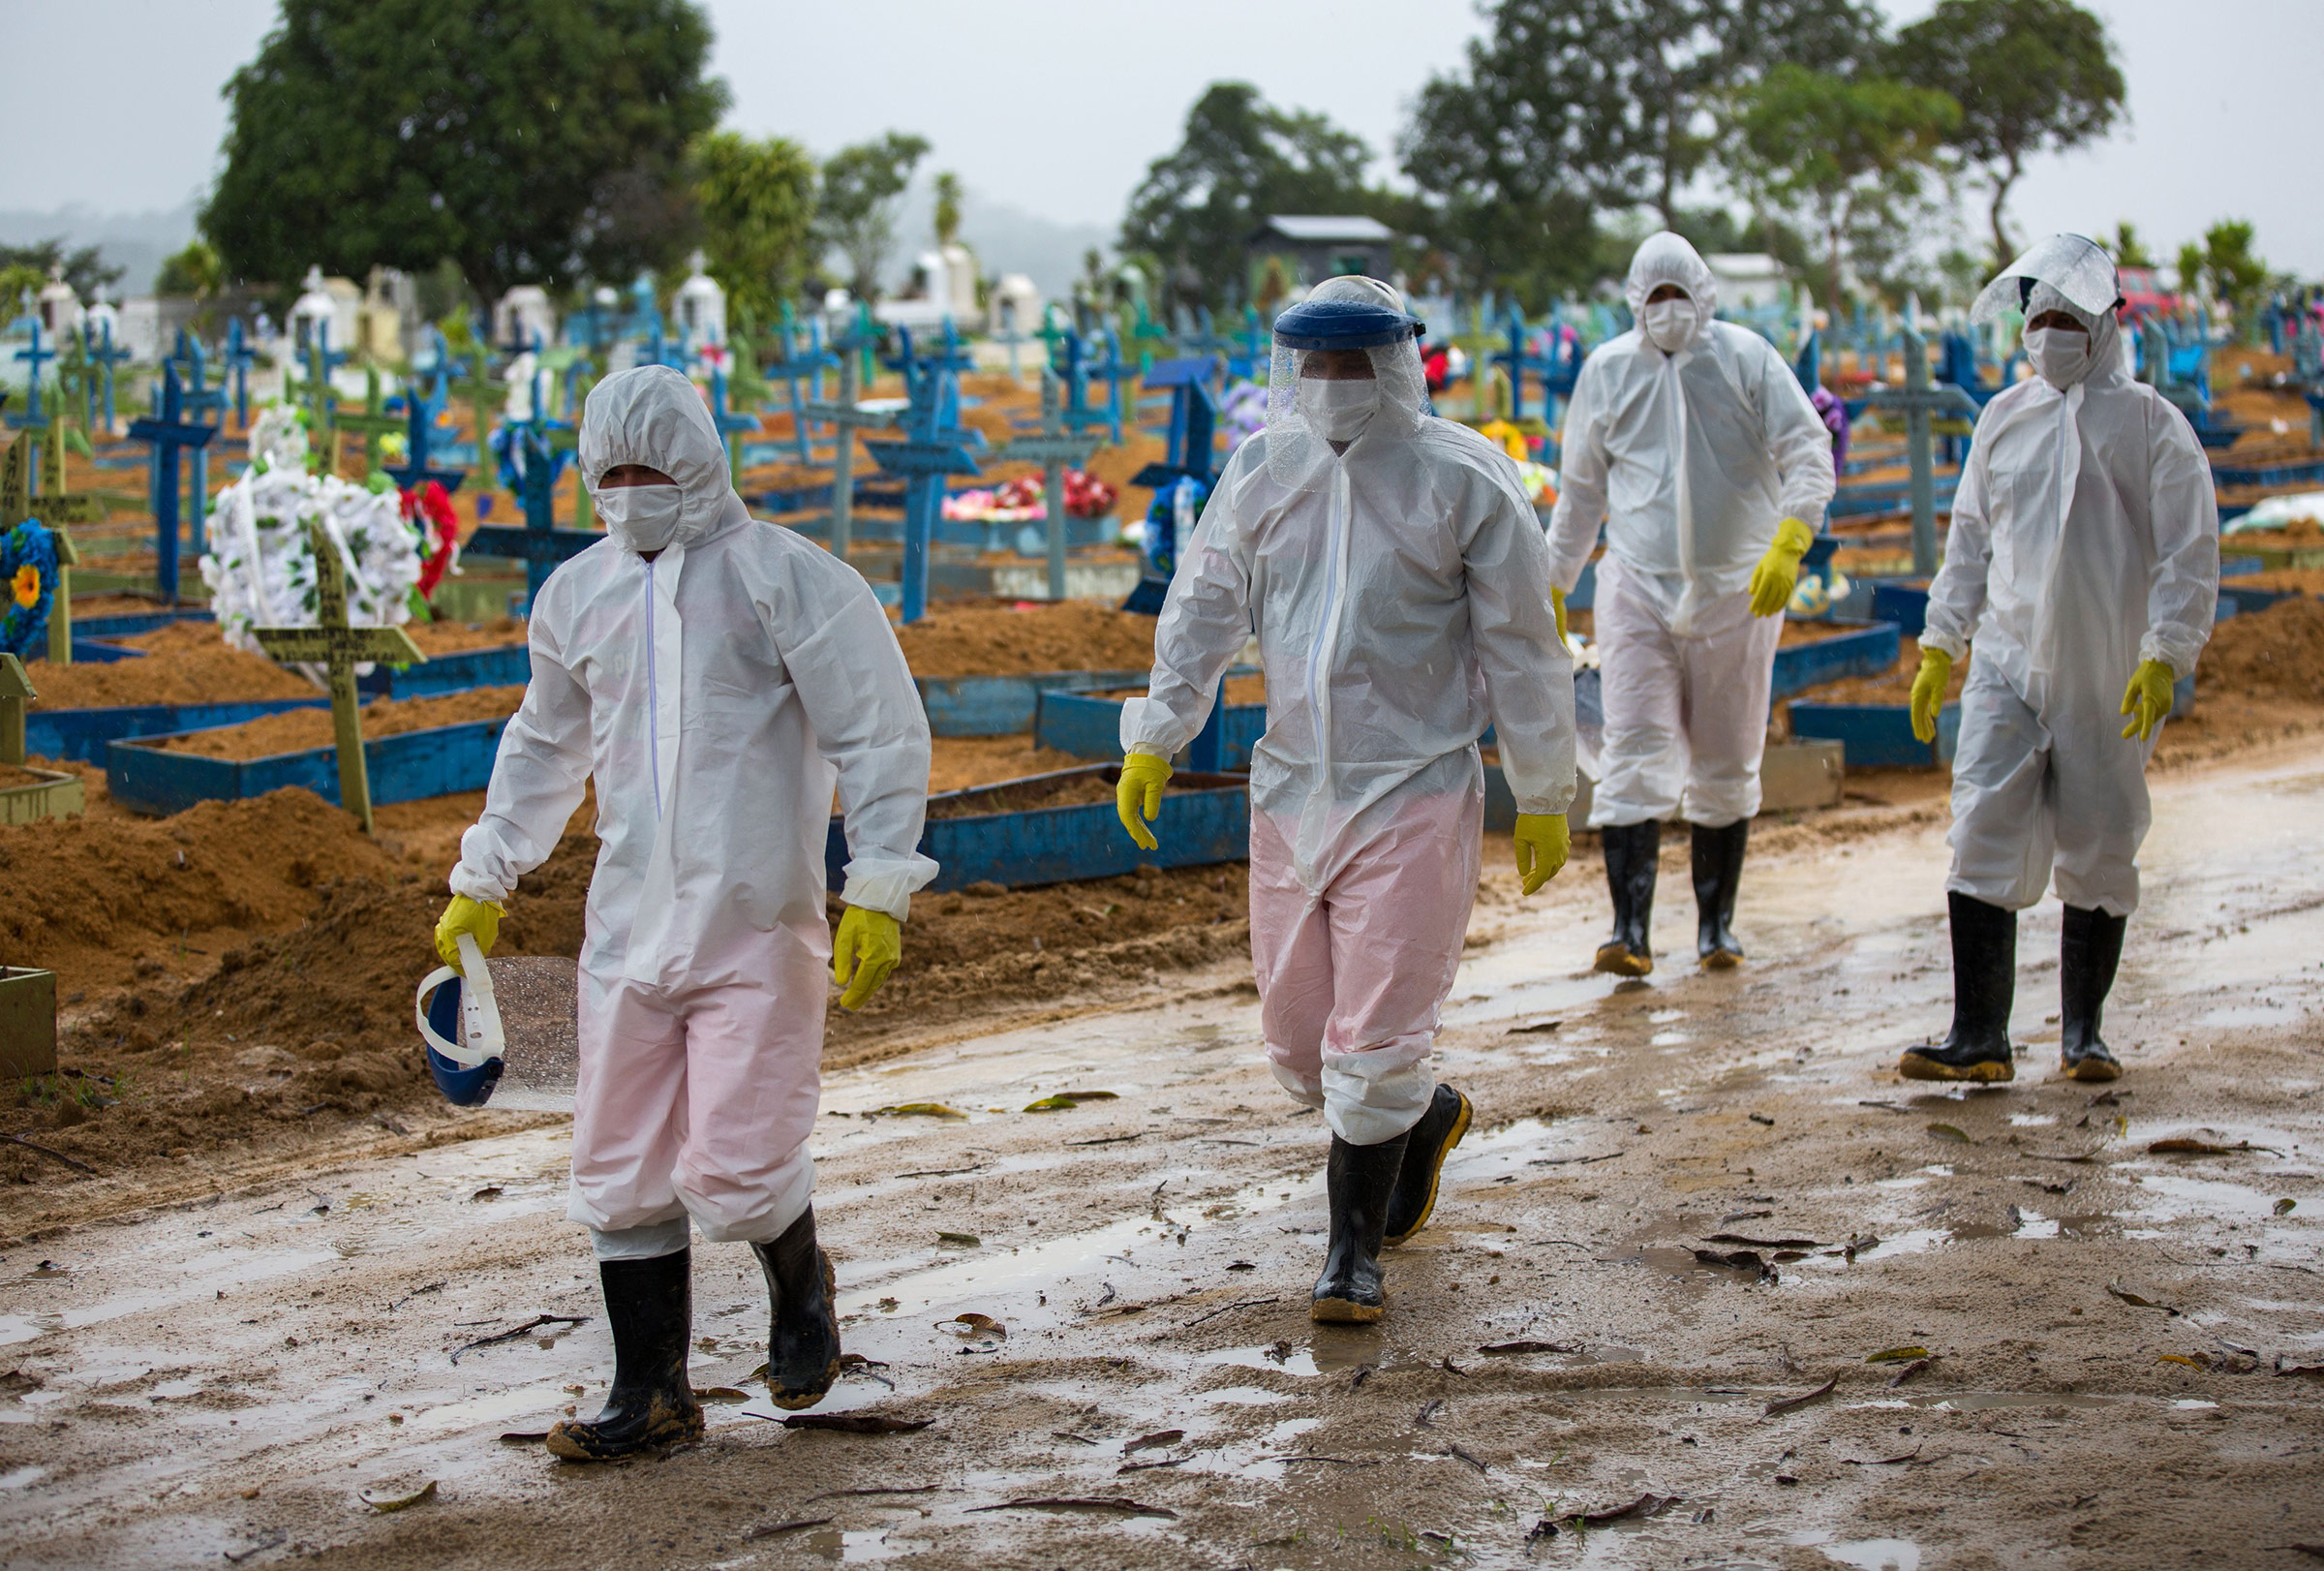 Workers wearing protective suits walk past the graves of Covid-19 victims at the Nossa Senhora Aparecida cemetery in Manaus, Brazil, on February 25.